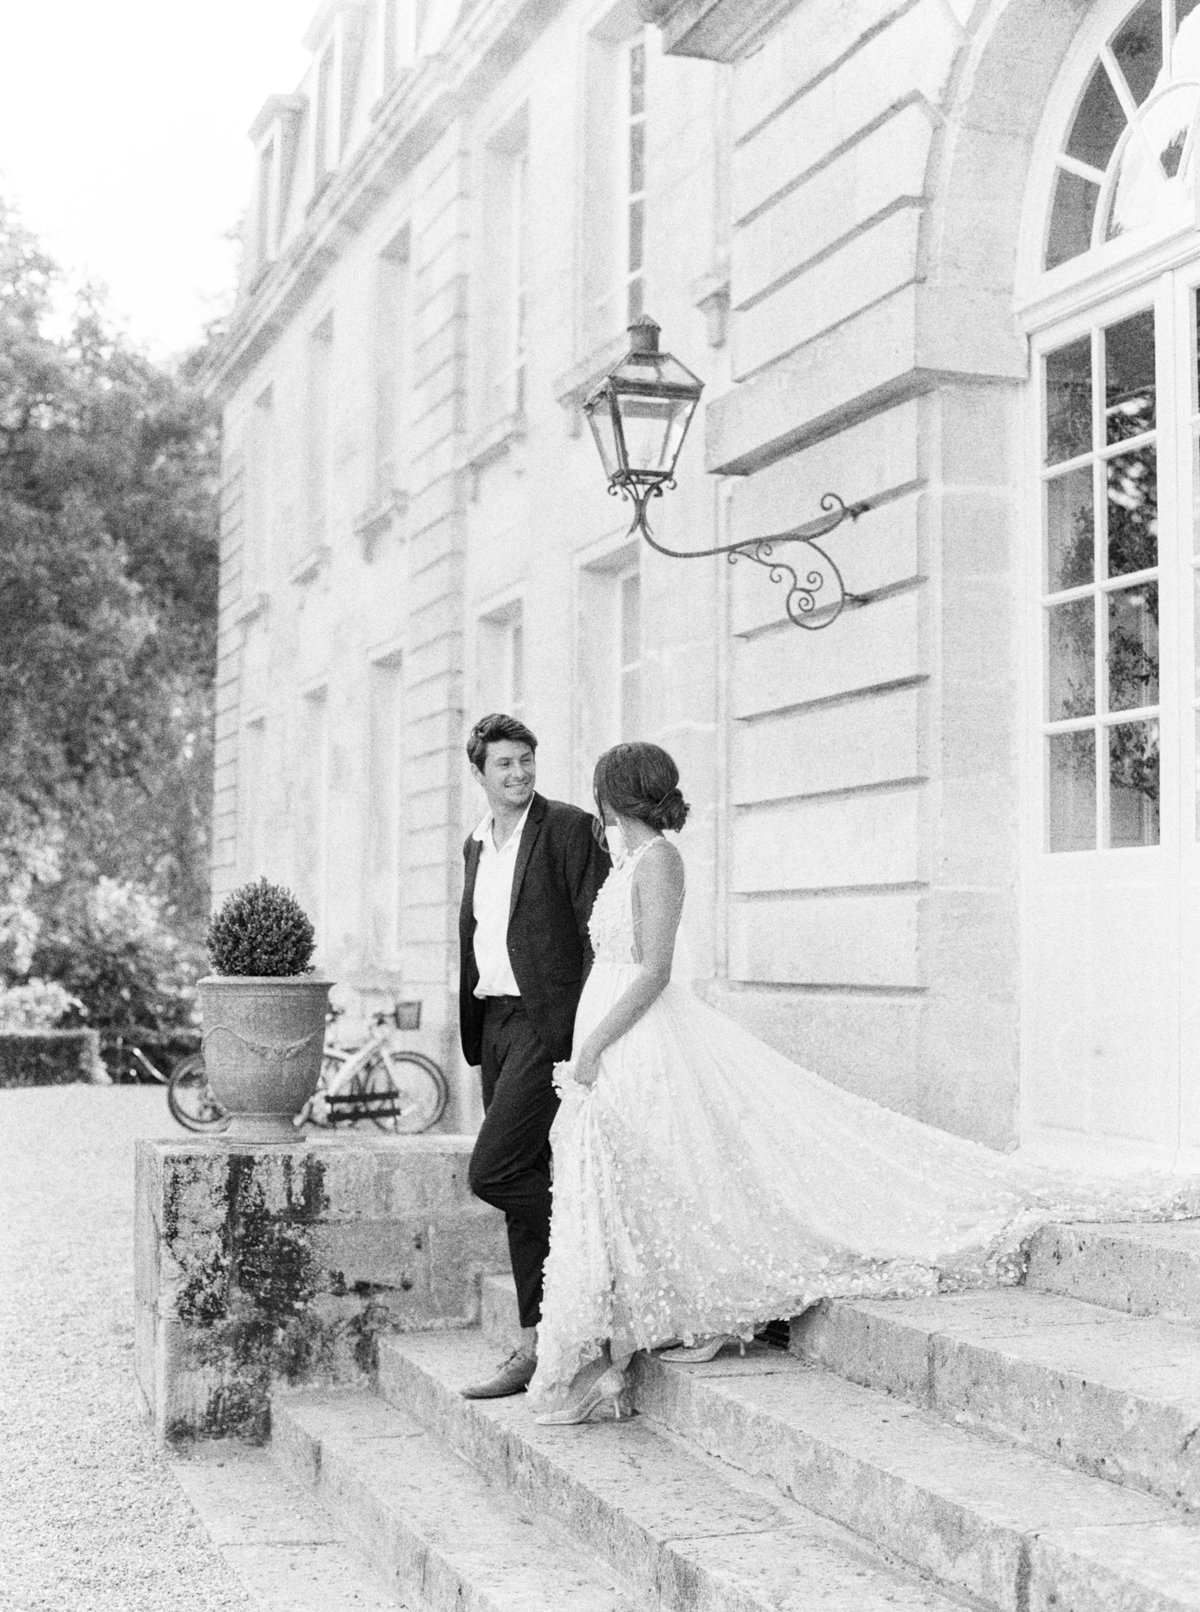 Normandy-Intimate Elopement Robin + Rachel_LFP004